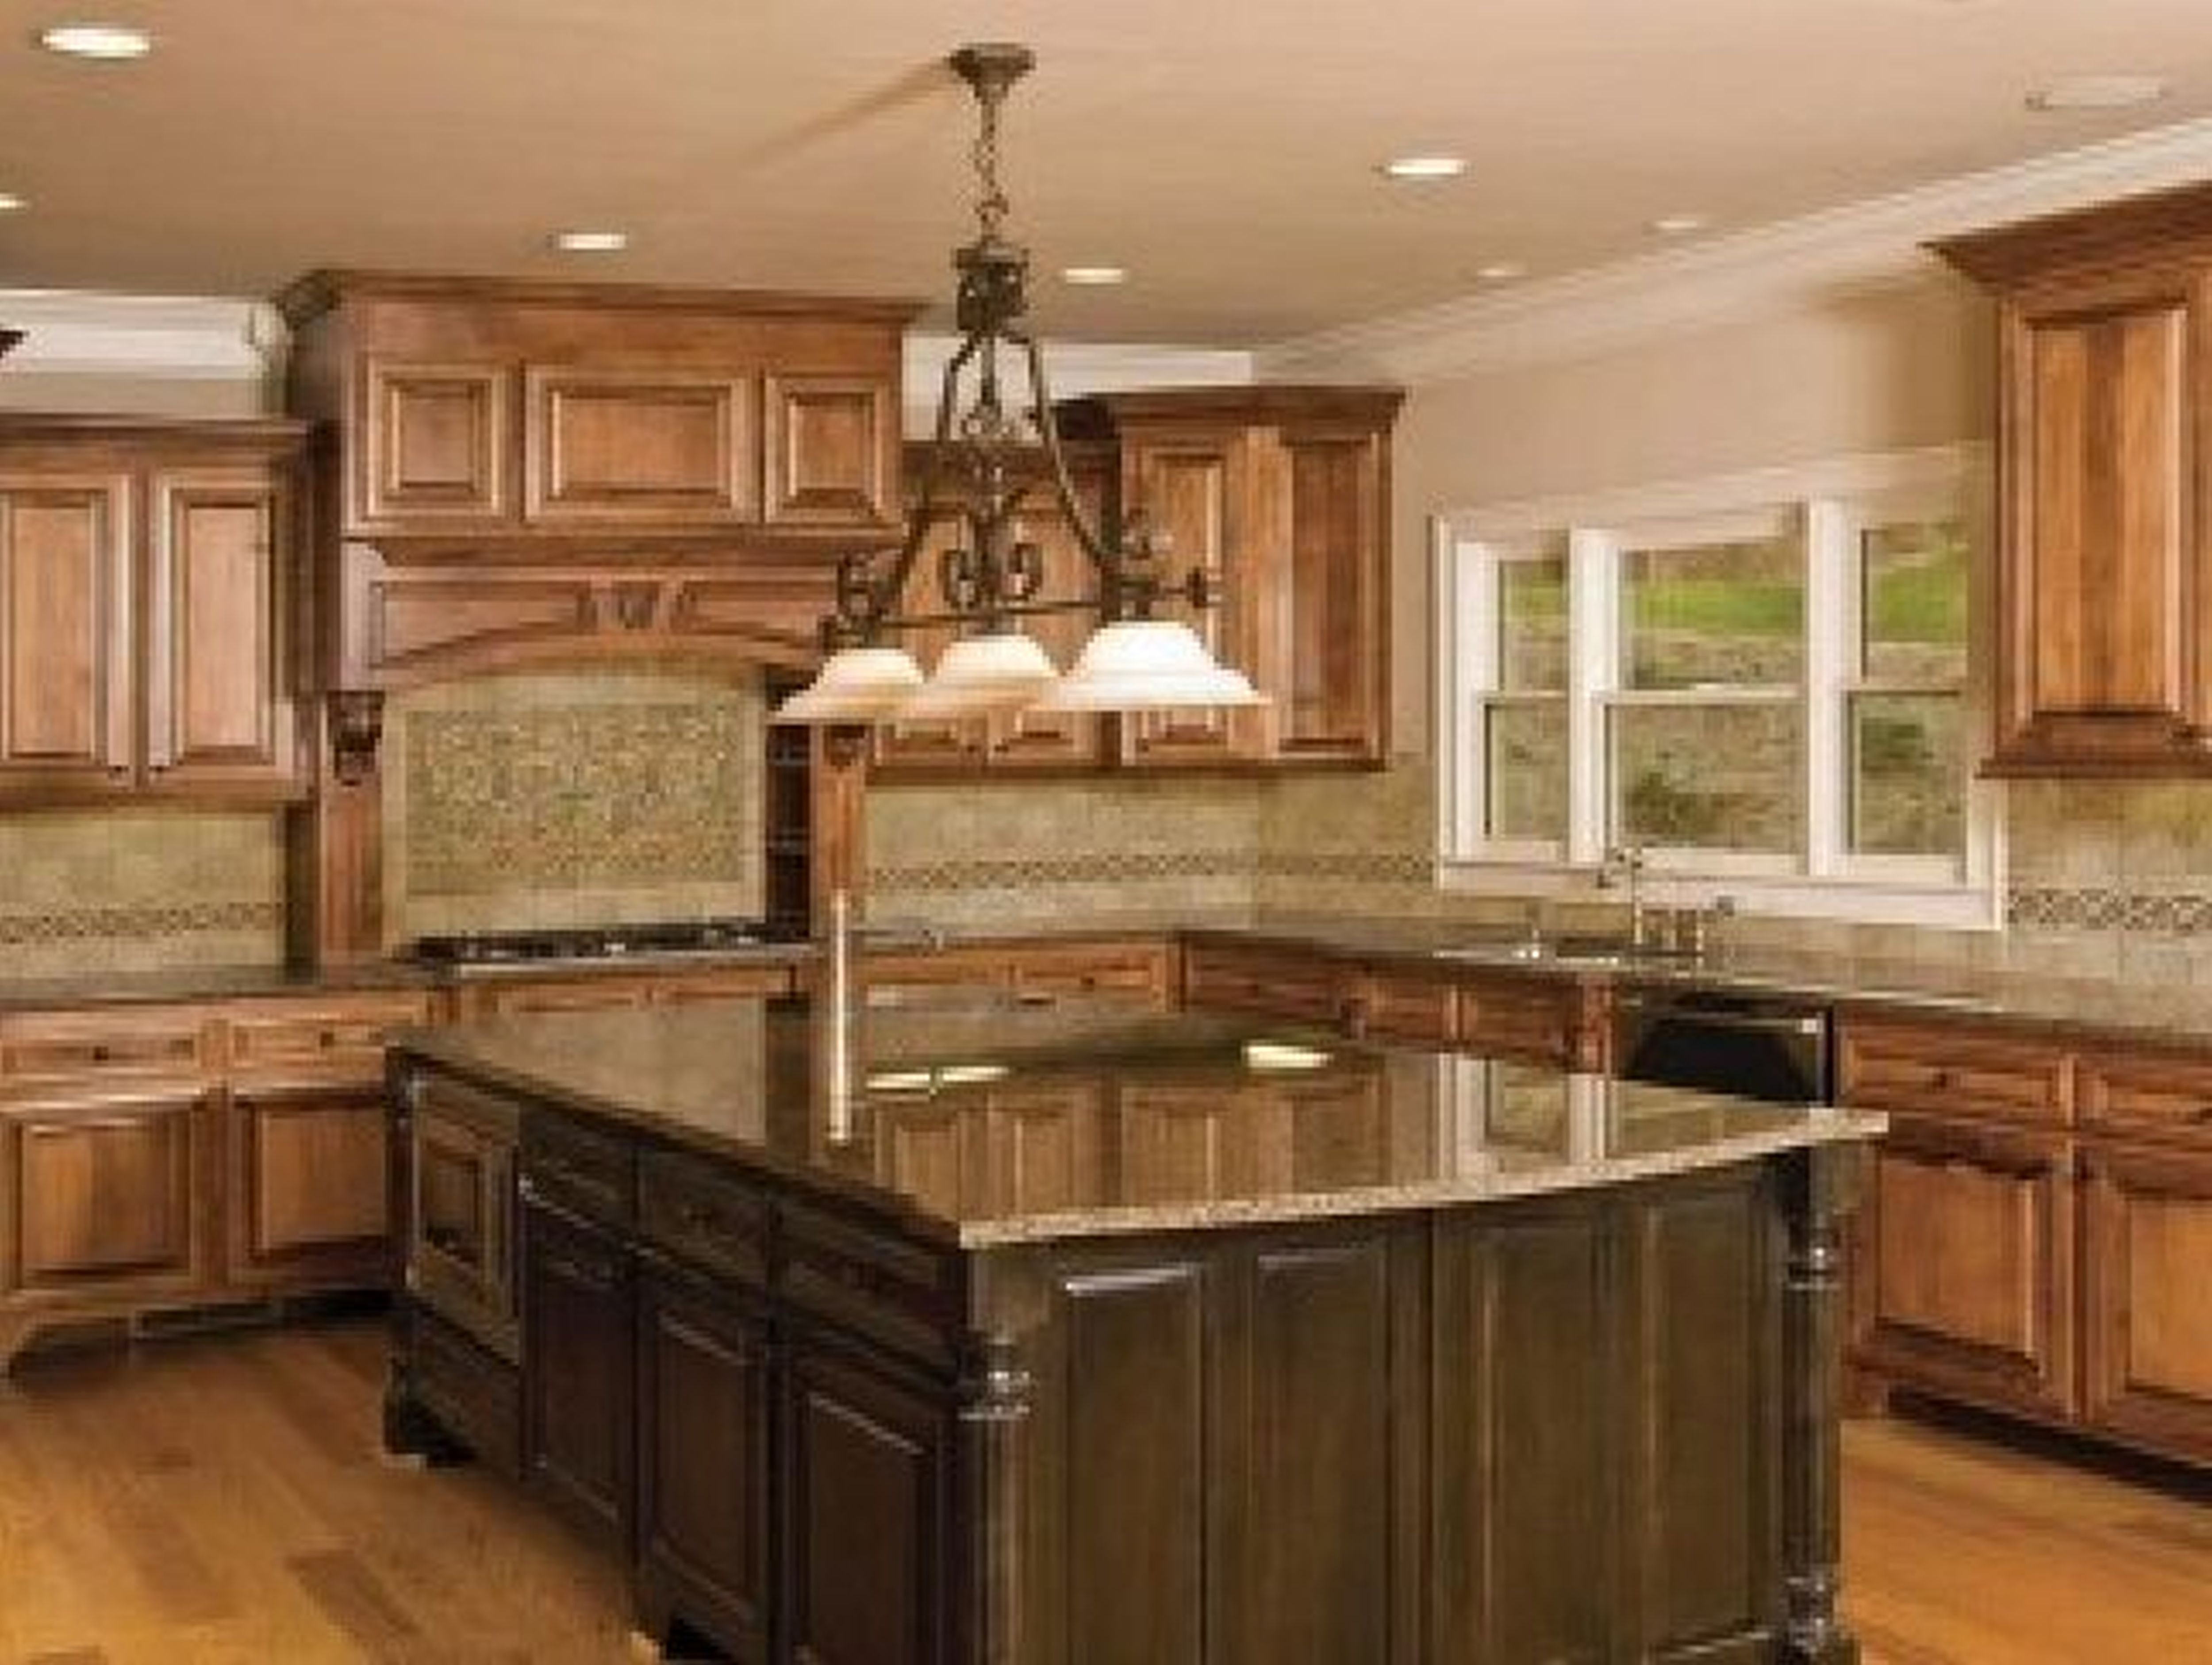 Nice fresh mobile home kitchen cabinets 32 home remodel ideas with mobile home kitchen cabinets